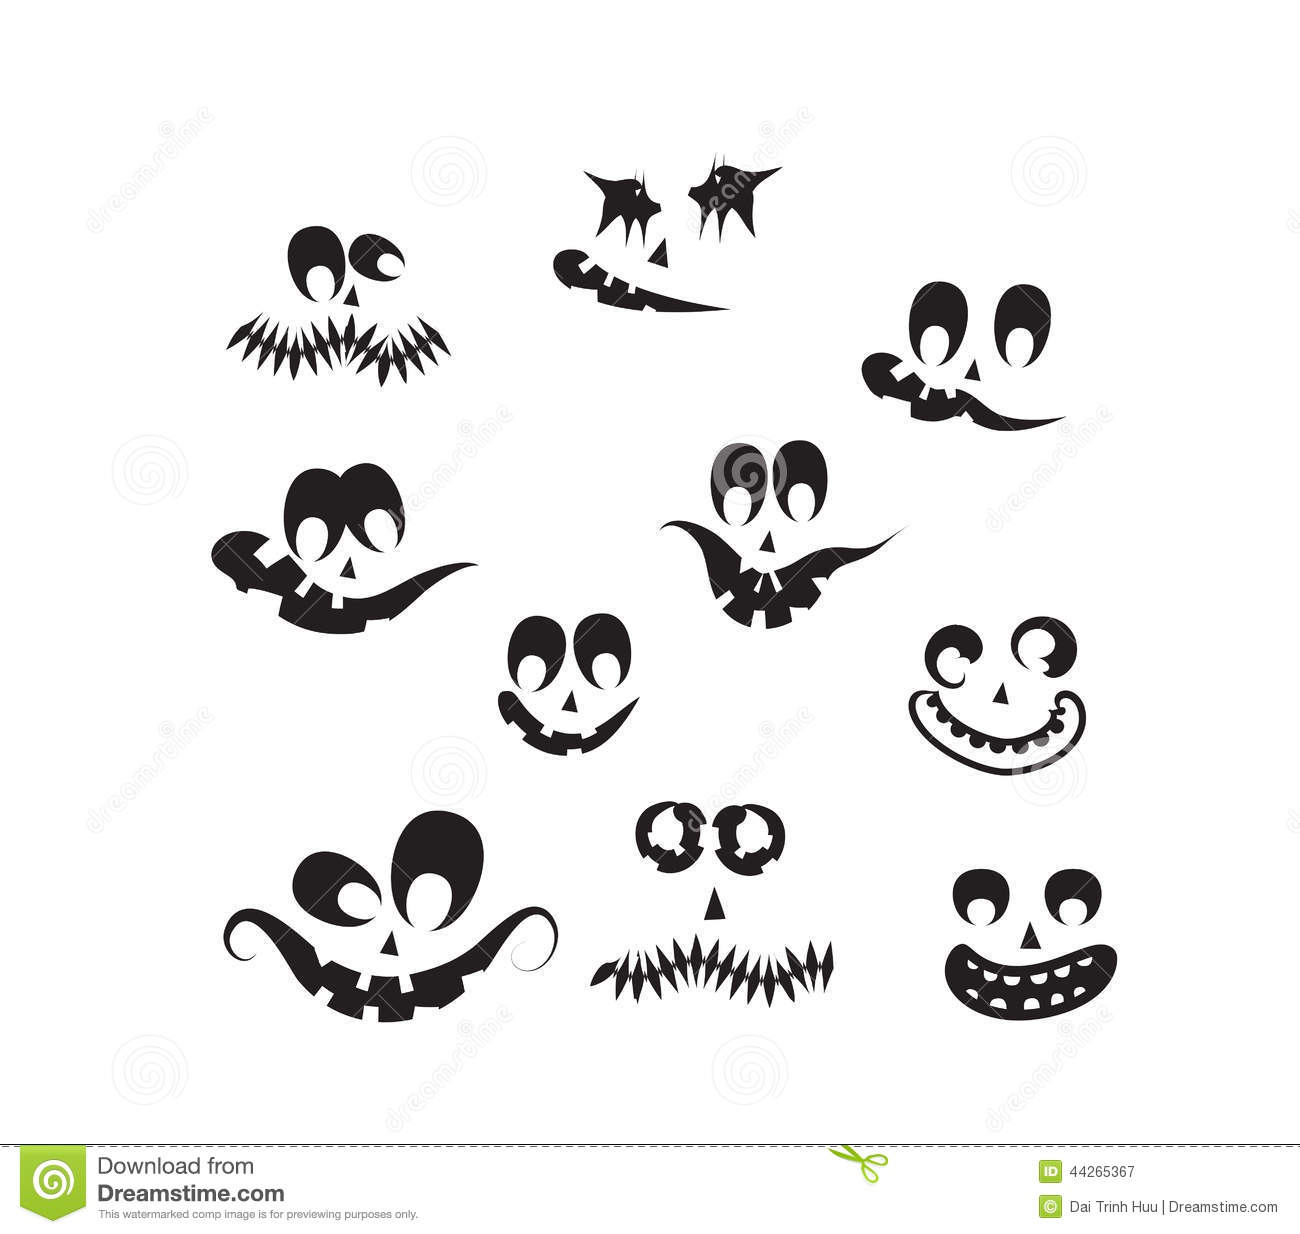 Scary Faces in addition Pumpkin Faces additionally Stock Illustration Ghost Faces Pumpkin Faces Design Image44265367 likewise 4 furthermore Pumpkin Carving Outline Printable. on scary eyes painted on pumpkin